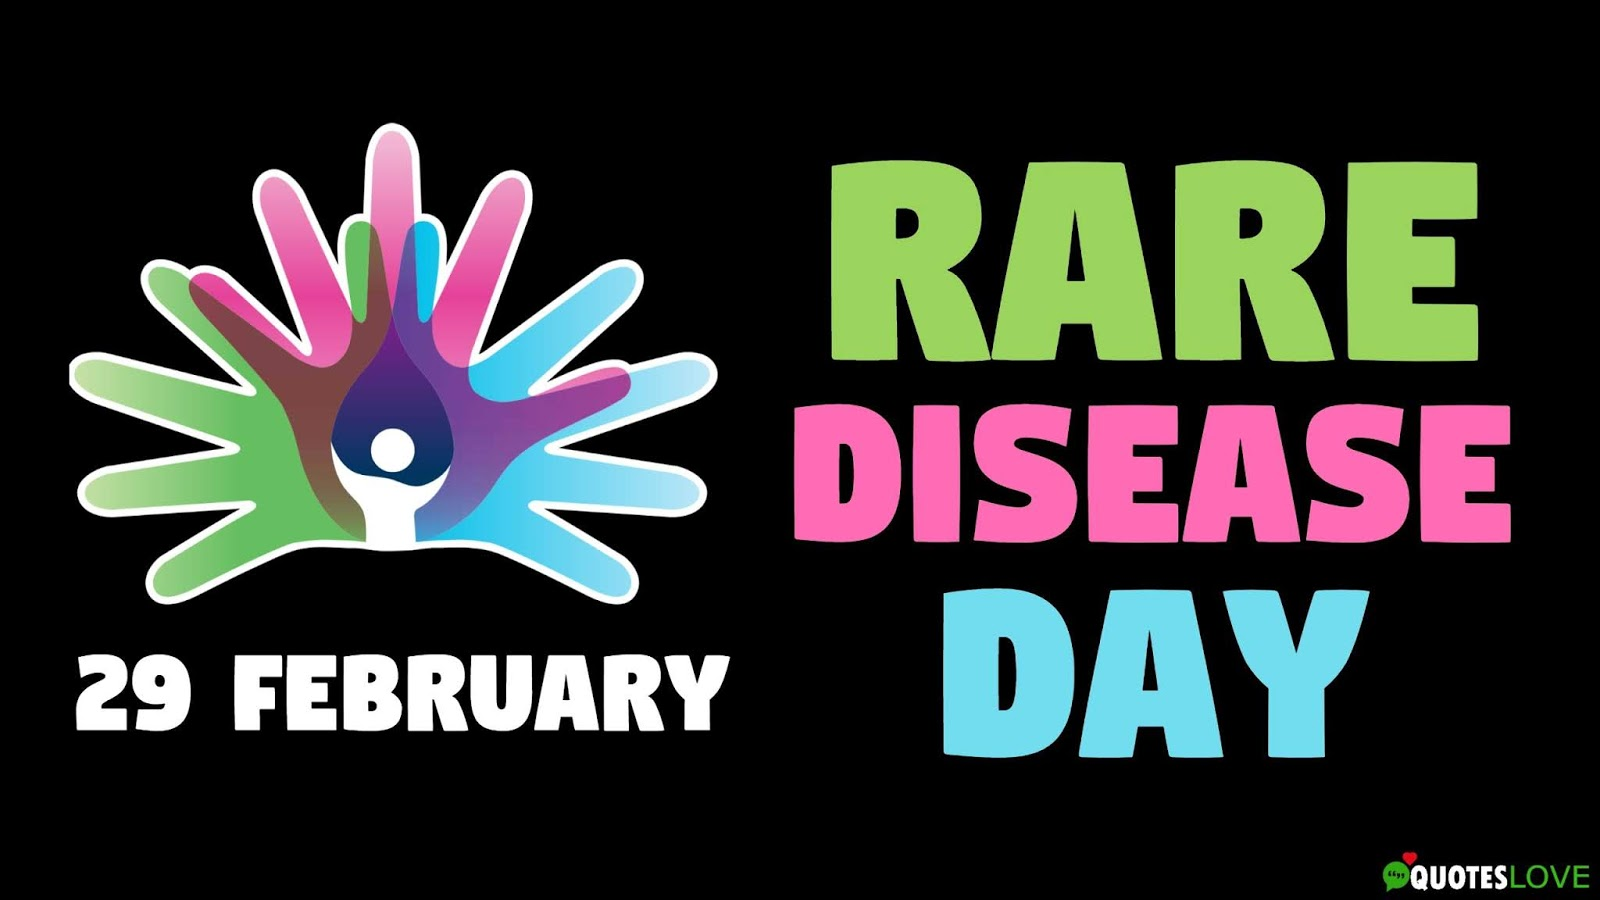 Rare Disease Day Quotes, Wishes, Messages, Images, Poster, Logo, Theme